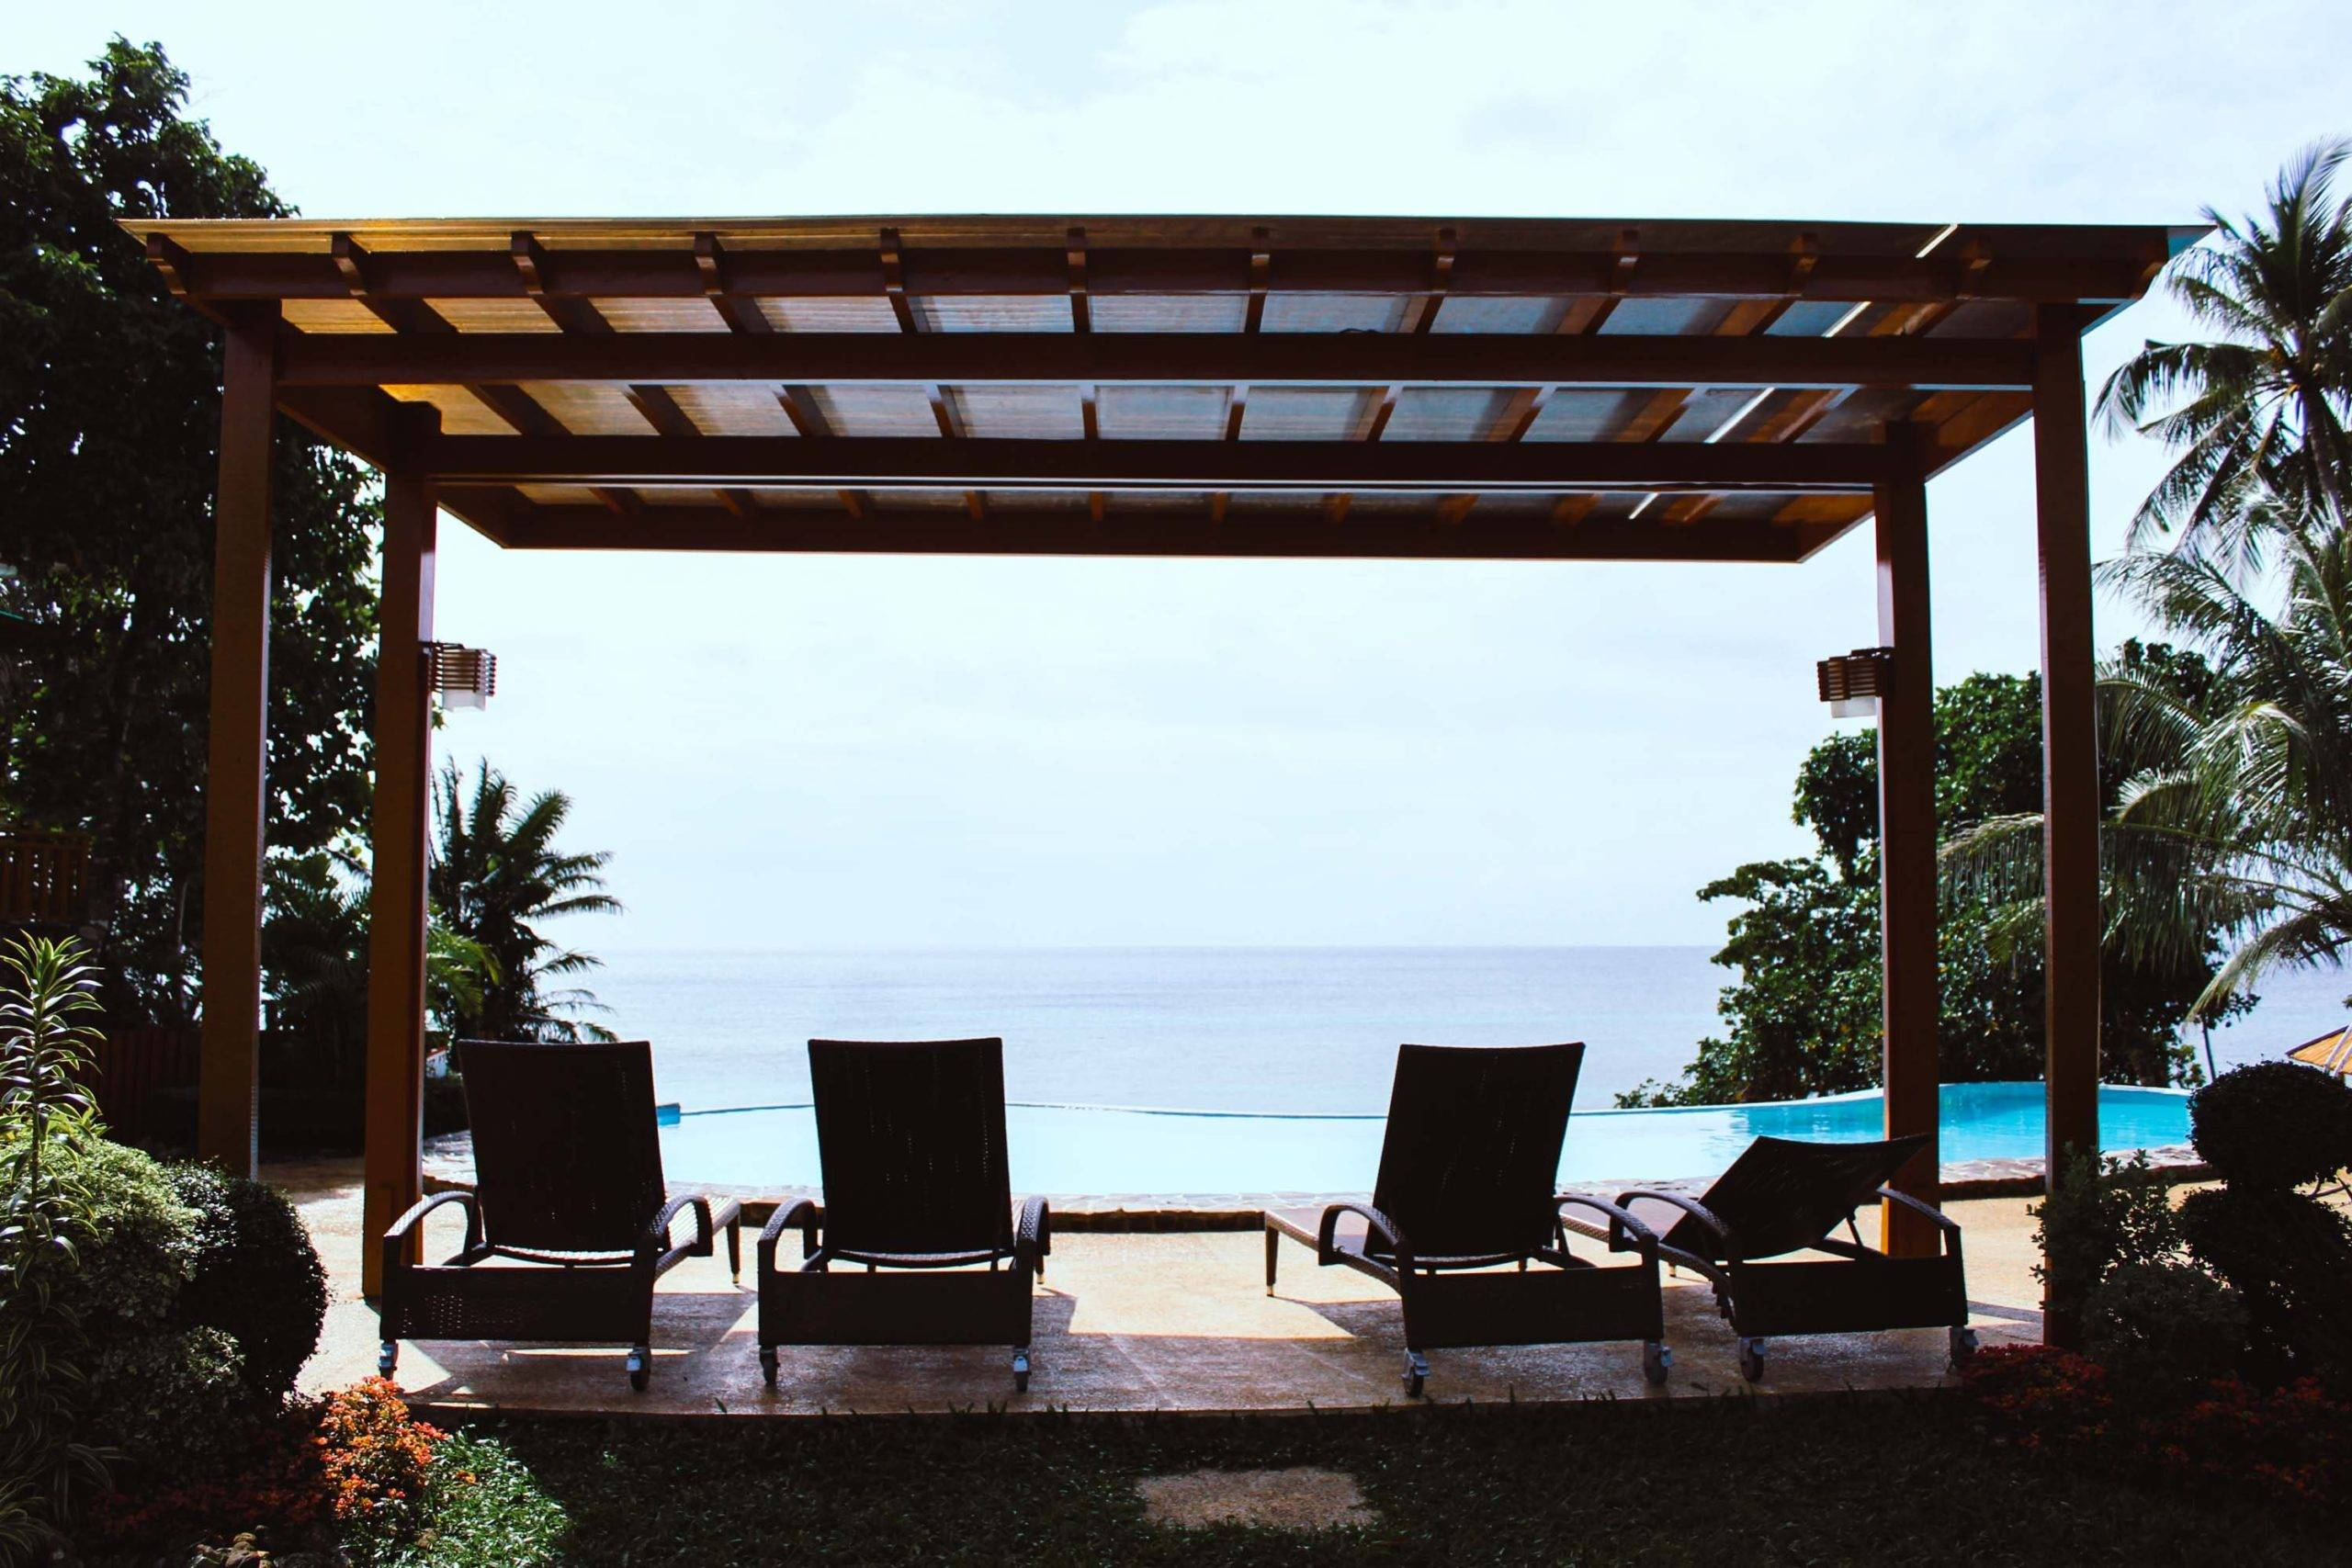 Lounge chairs overlooking the sea